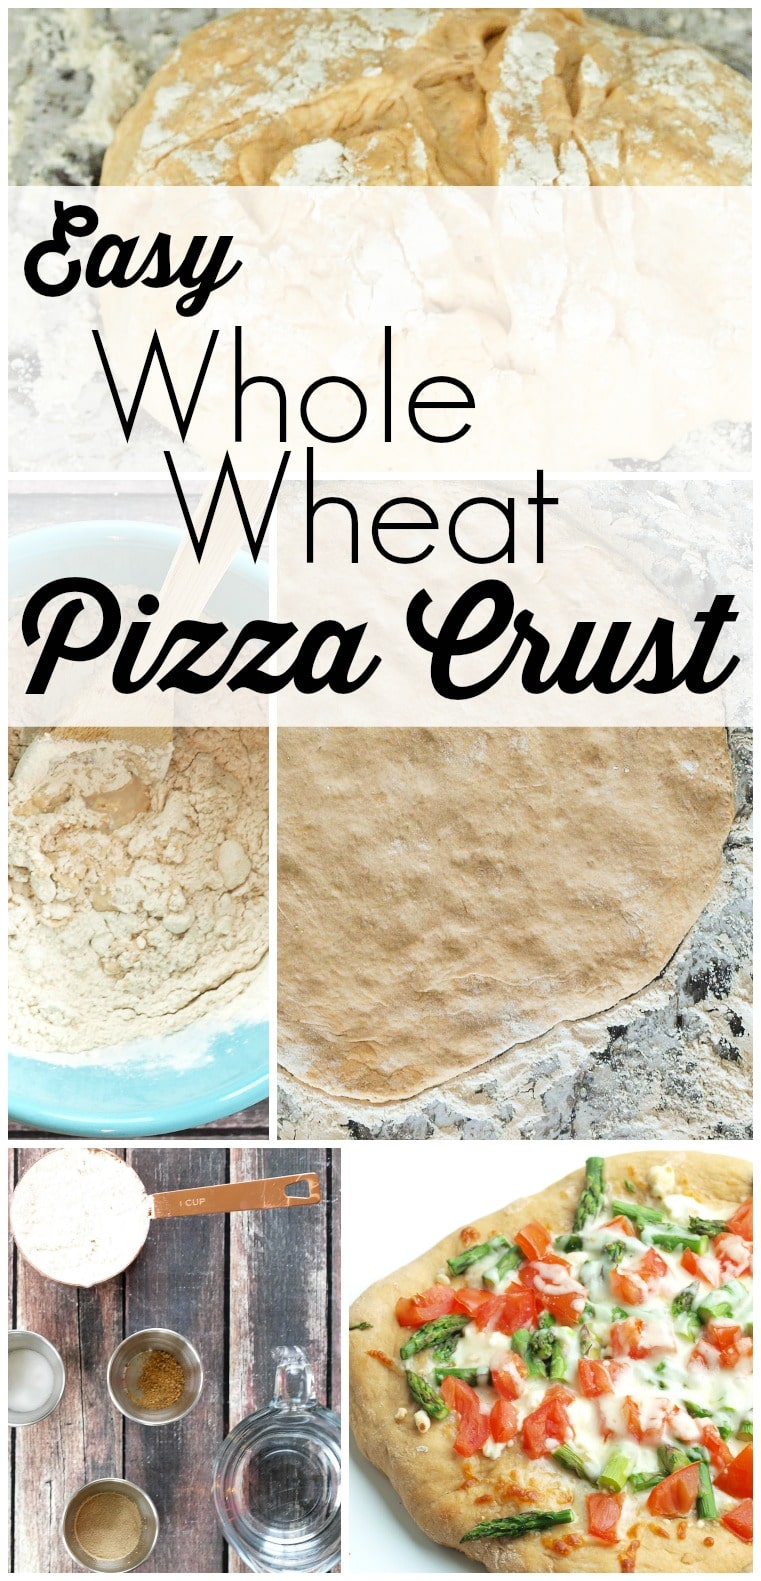 Easy Whole Wheat Pizza Crust! This is a great easy recipe for healthy homemade pizza crust. It's easier than you think